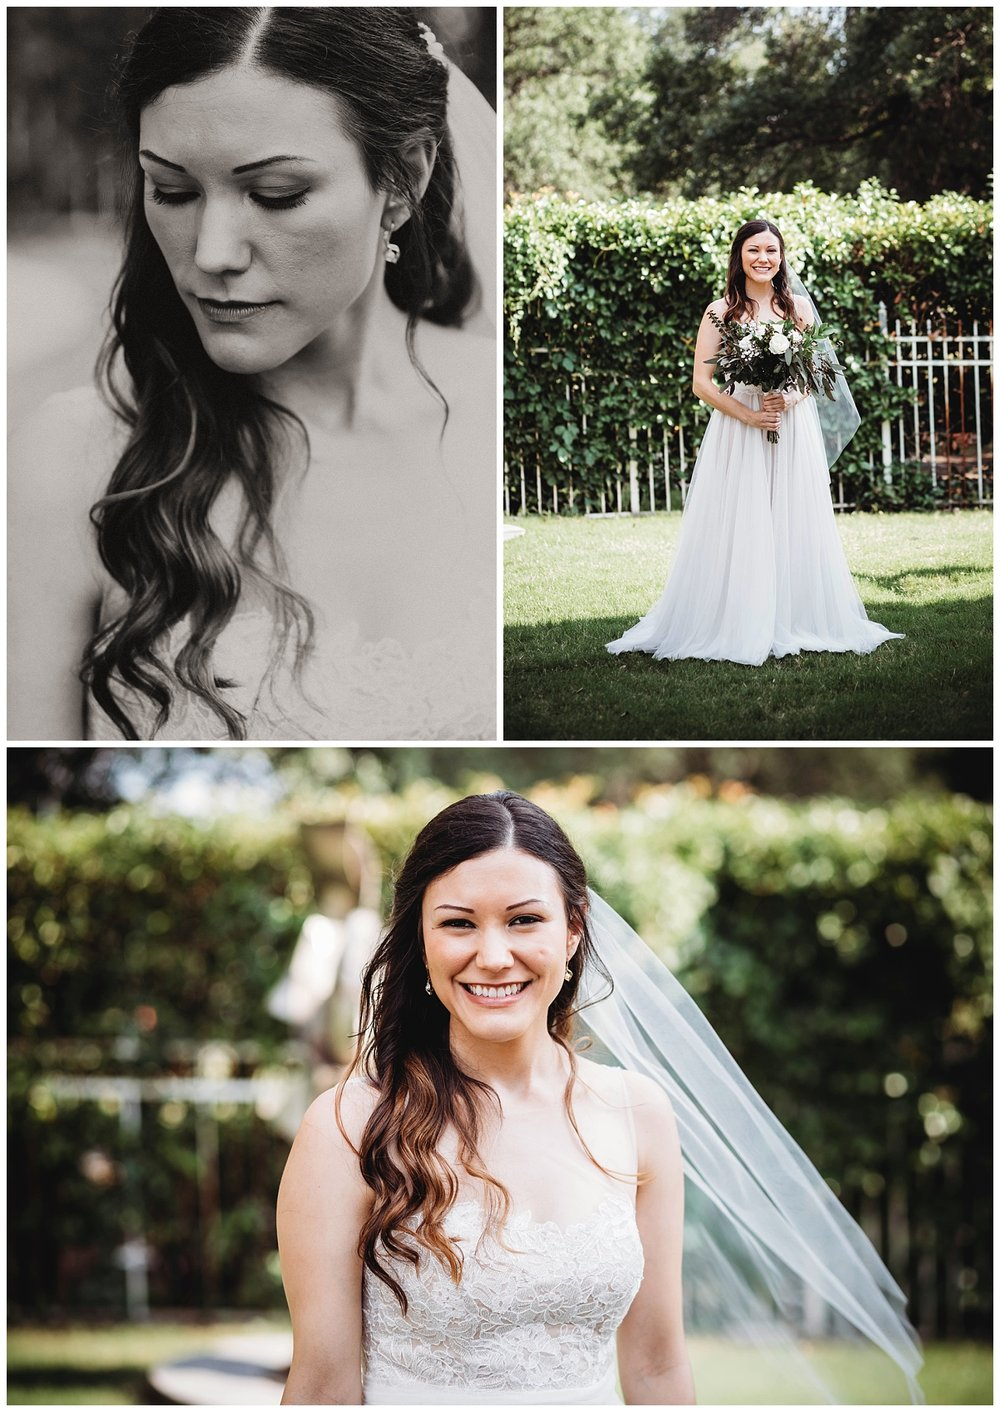 Portraits of the beautiful bride before her wedding. The weather was gorgeous that day!